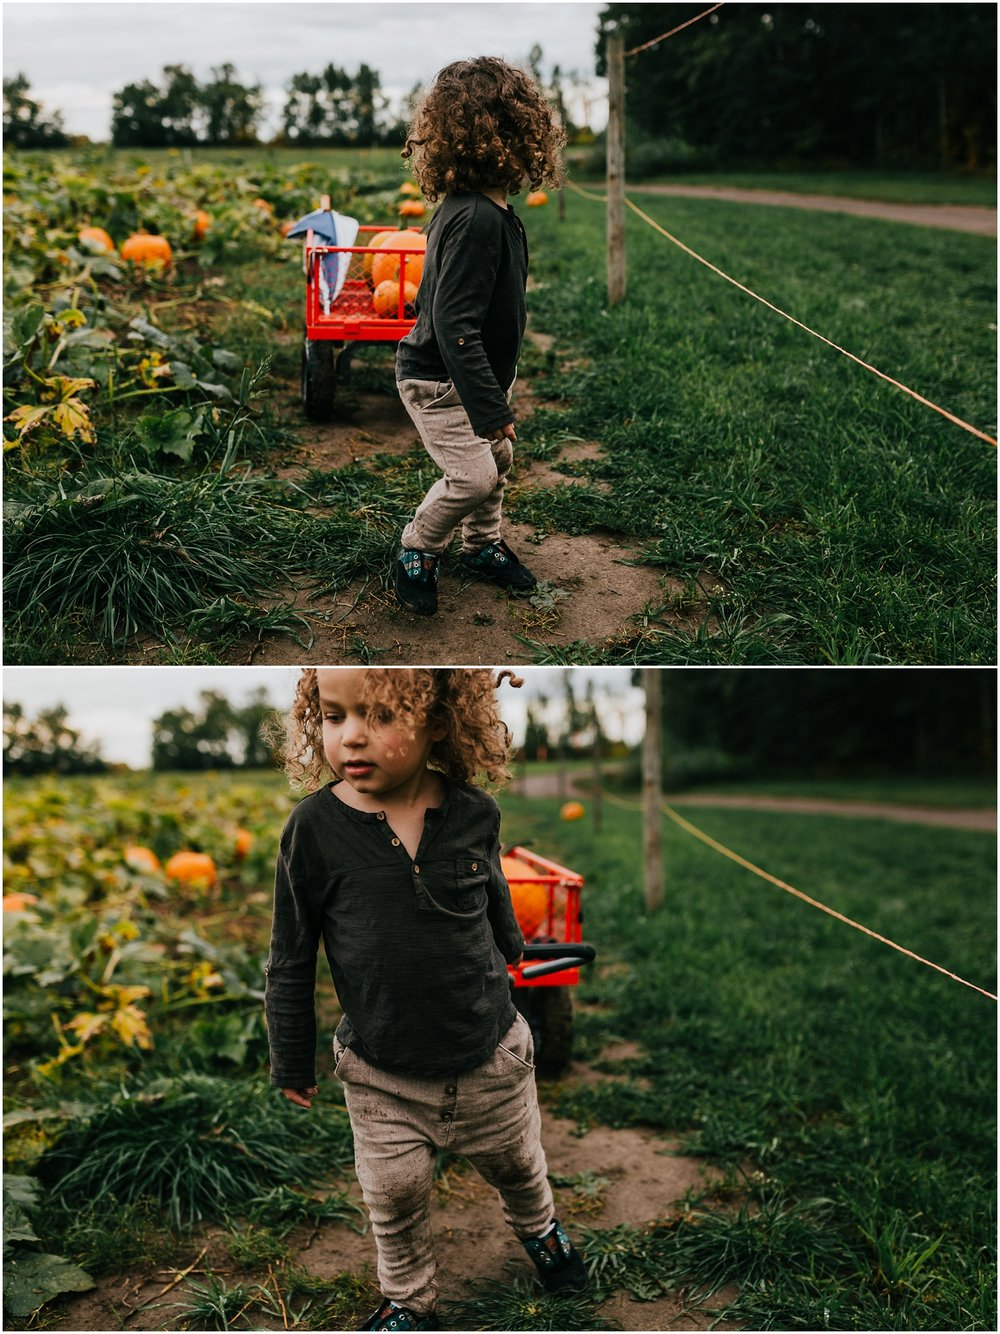 Edmonton Lifestyle Photographer - Treelines Photography - Edmonton Documentary Photographer - Pumpkin Picking Parkland County